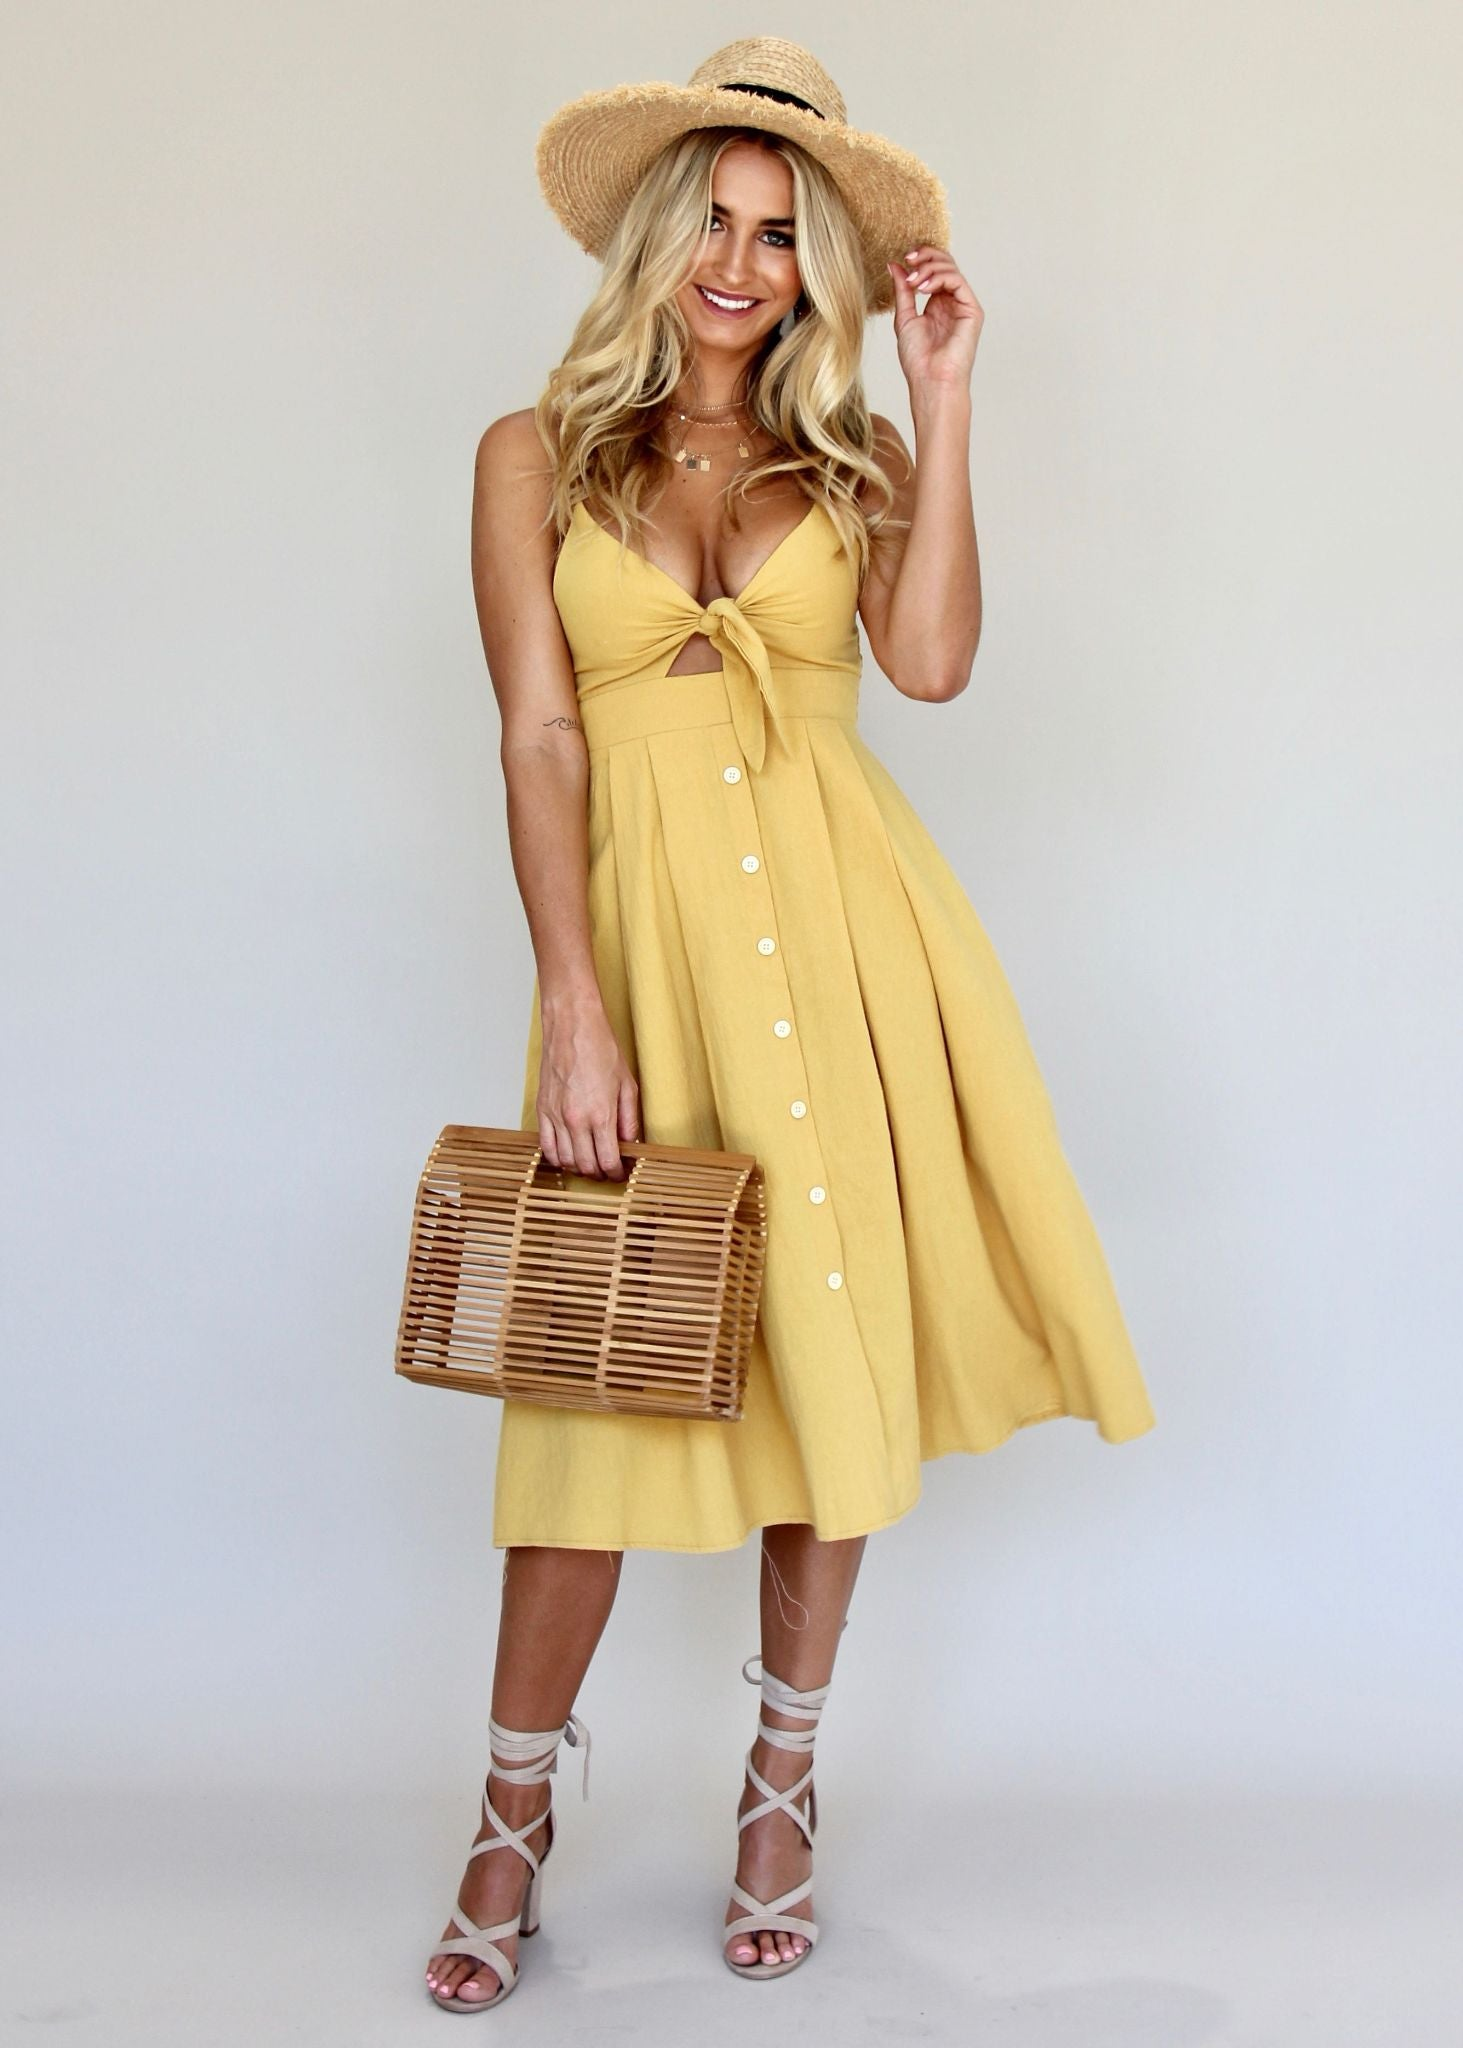 Big City Midi Dress - Butterscotch